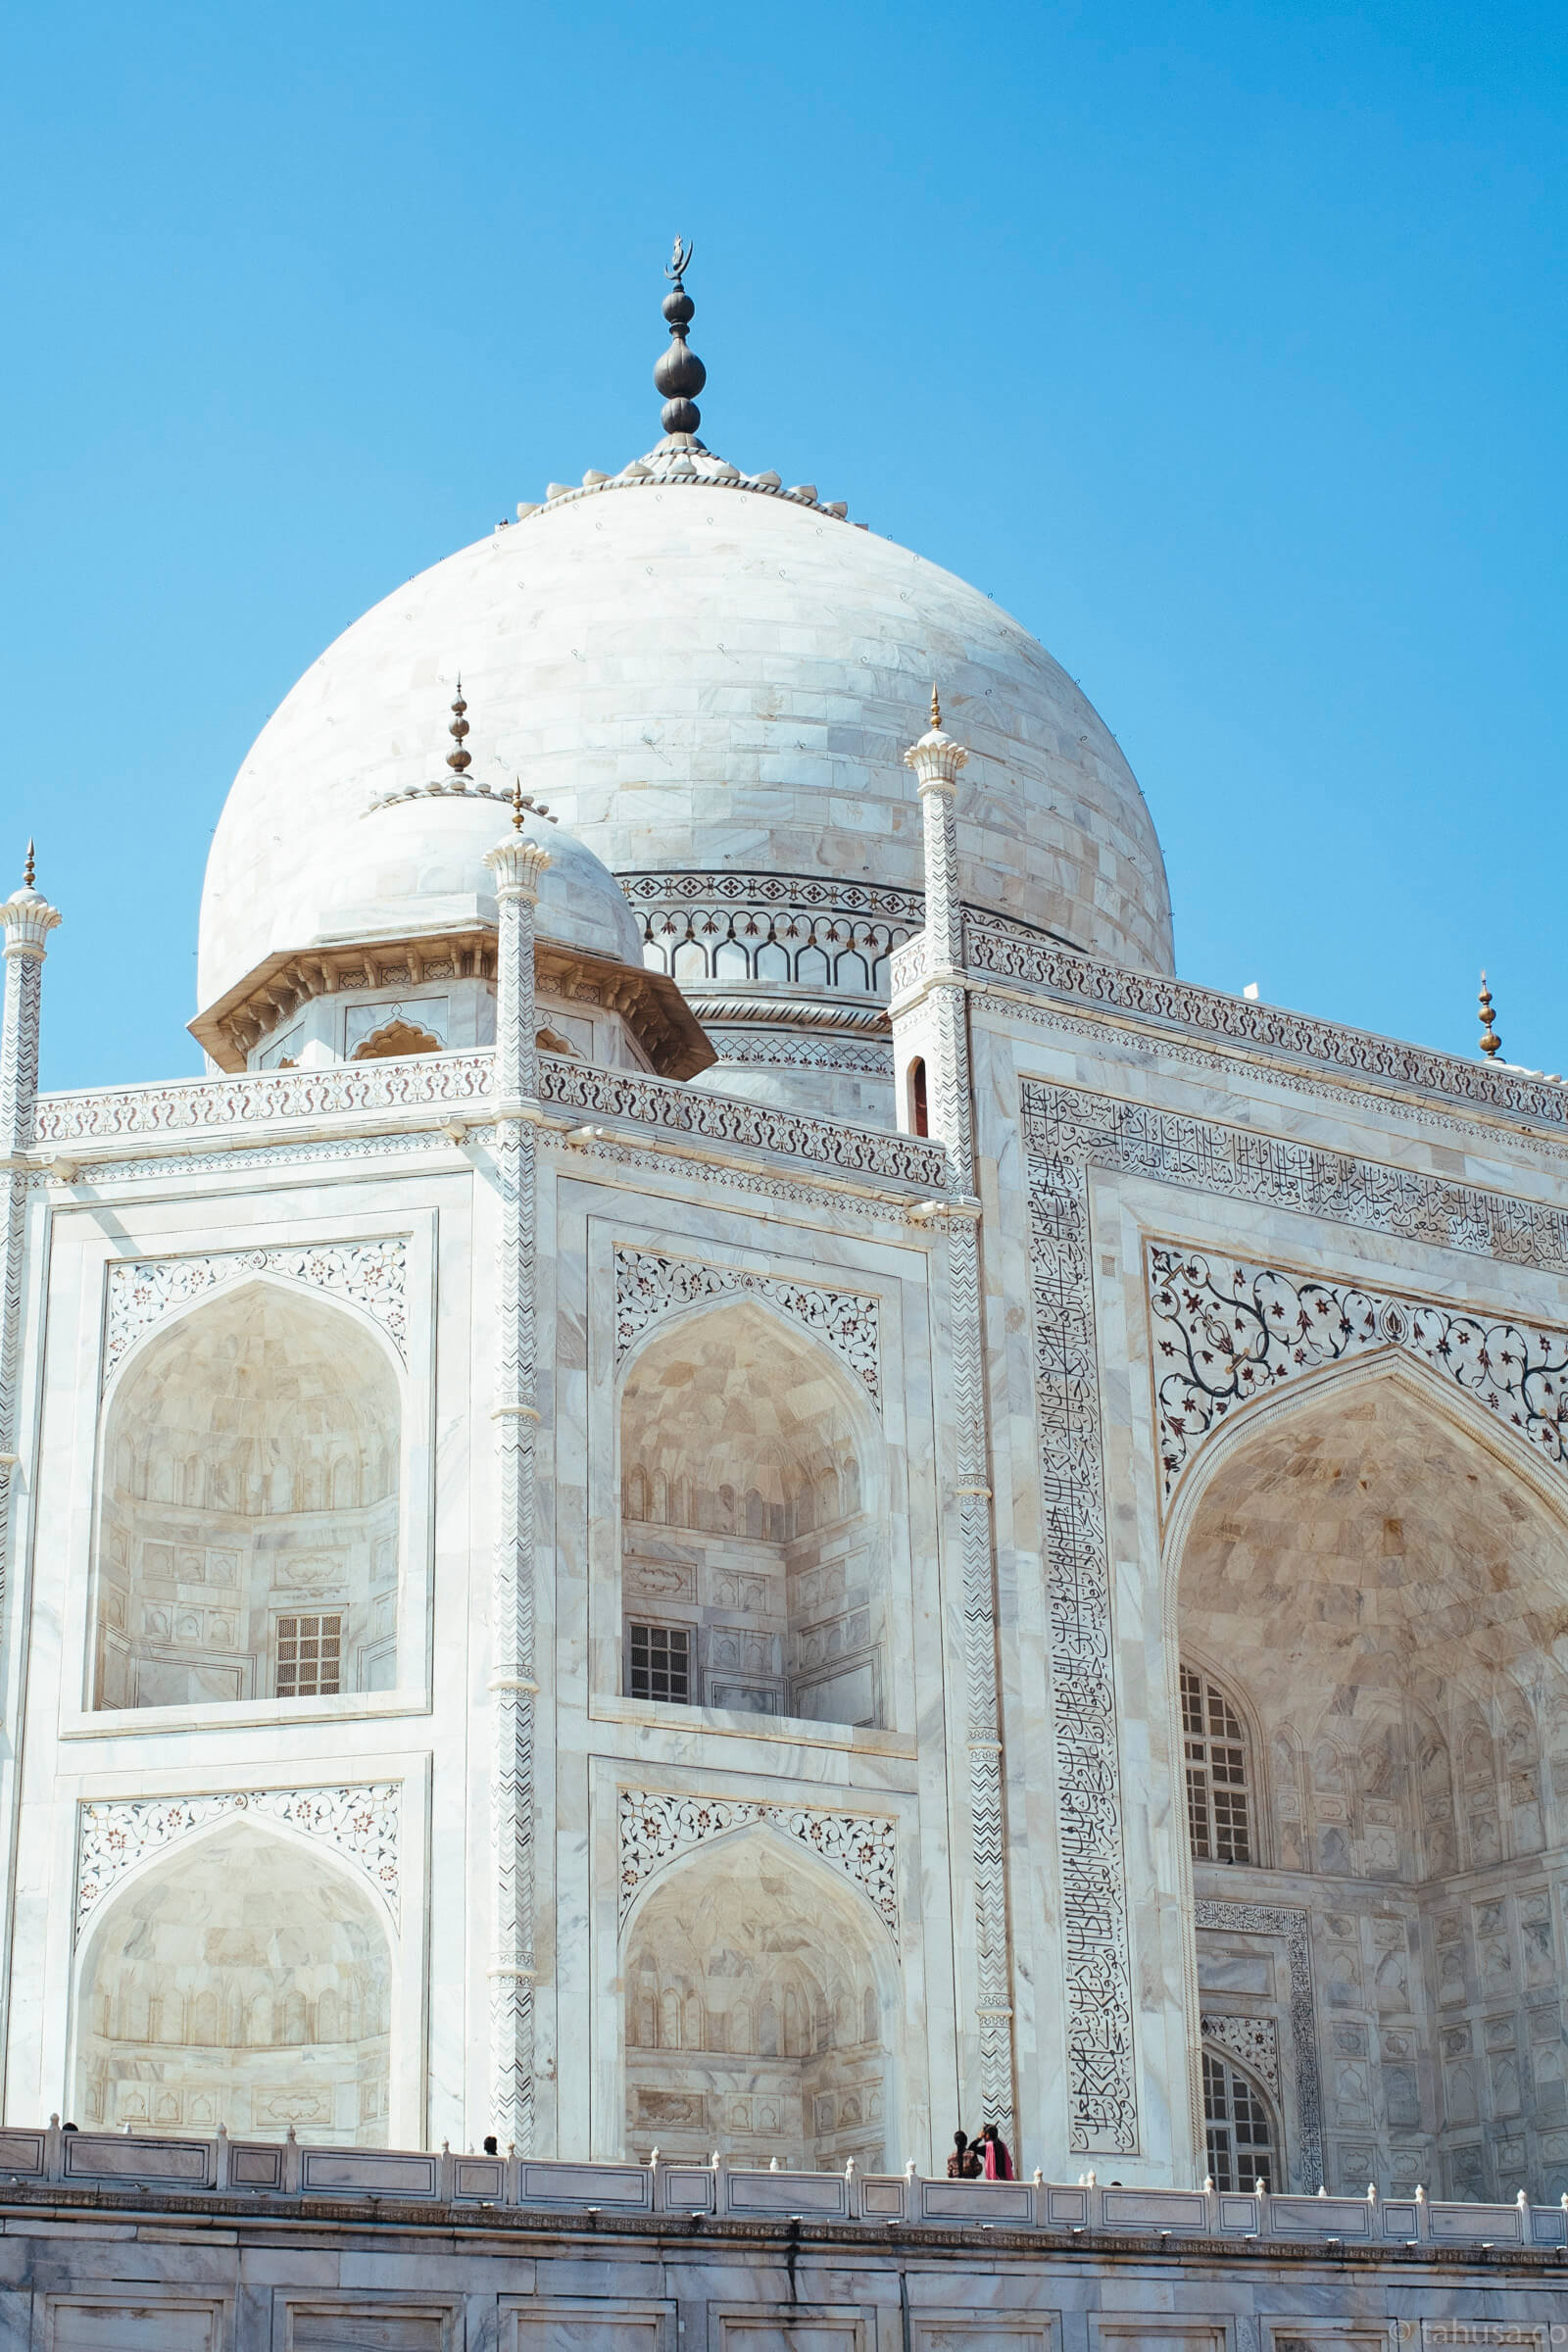 Tajmahal-seven-wonder-world-agra-fort-scenic-attraction-city-scanner-cities-snap-India